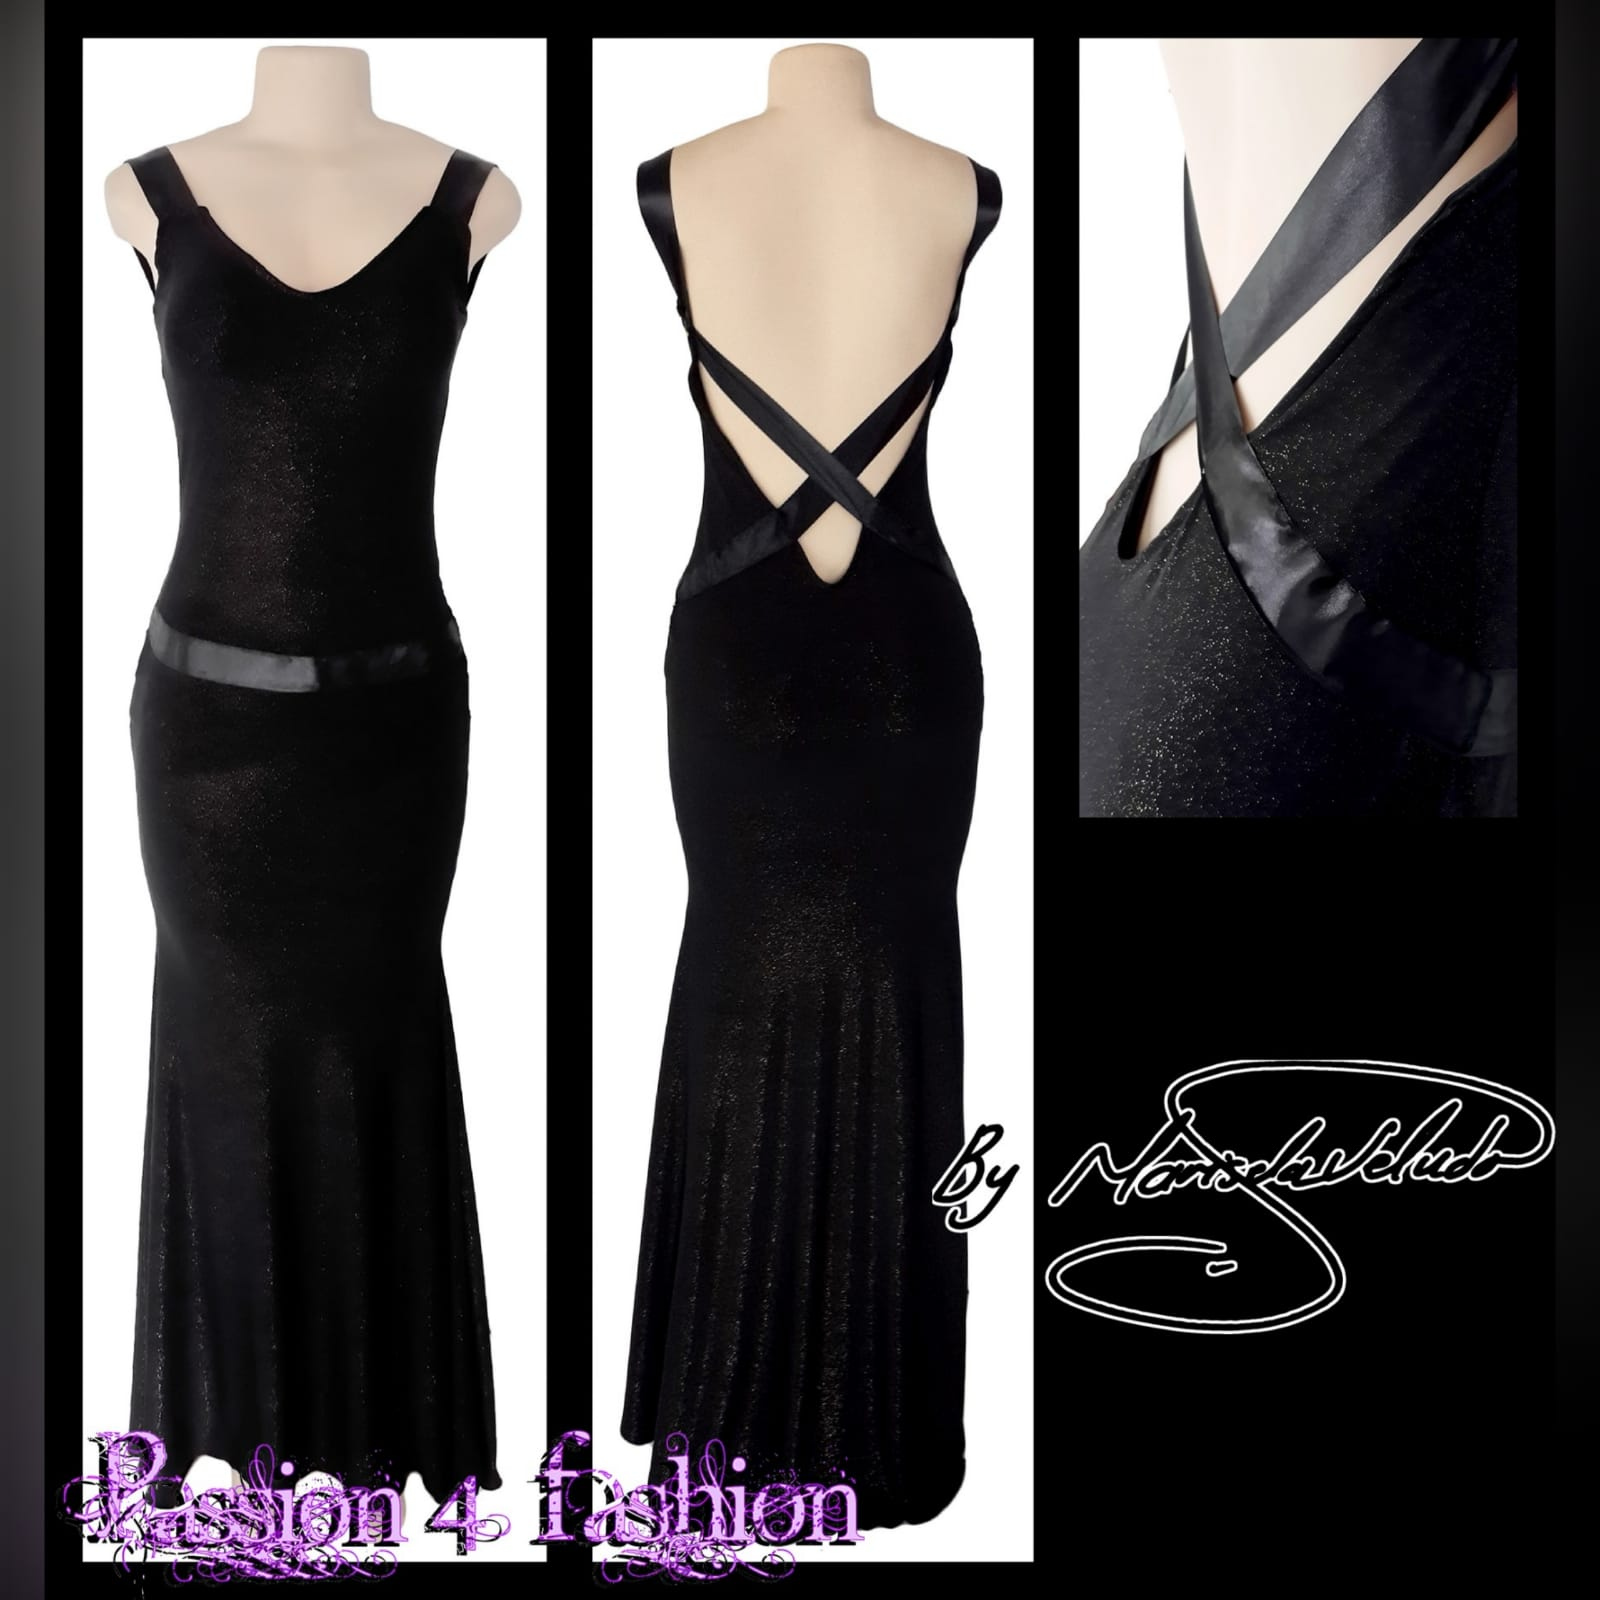 Black shimmer long gala evening dress 2 black shimmer long gala evening dress, with a low v open back. With ribbon creating a belt and a cross at the back